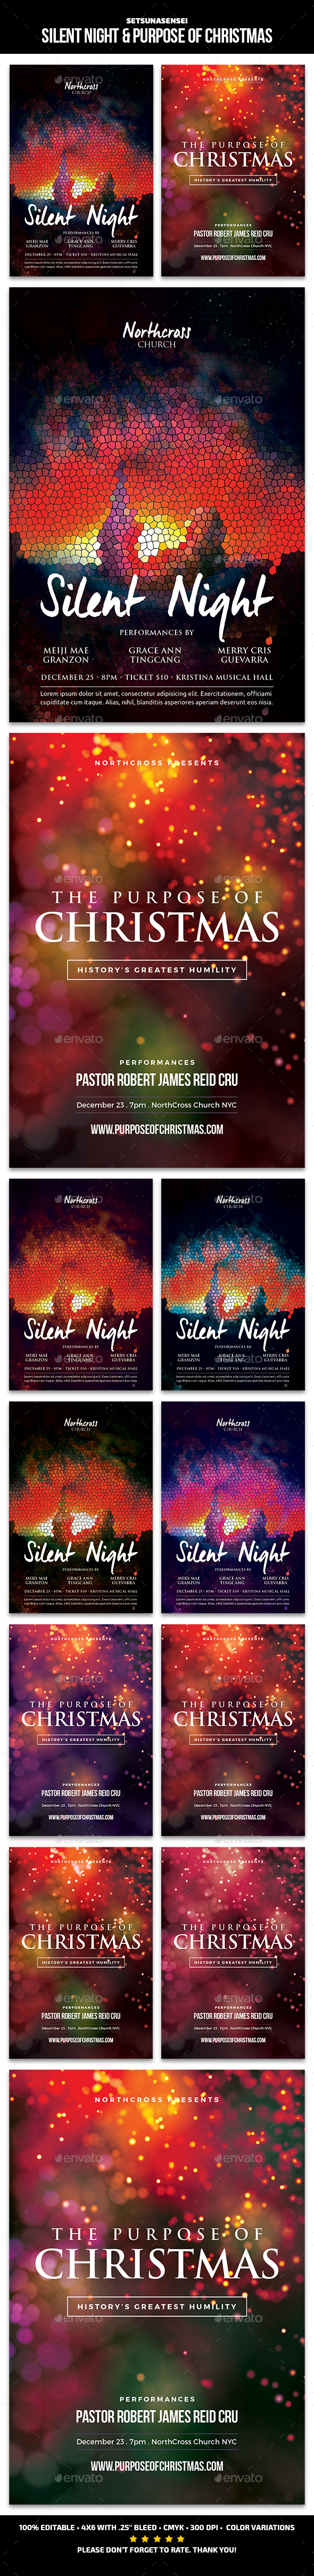 Silent Night & Purpose of Christmas Church Flyers - Church Flyers